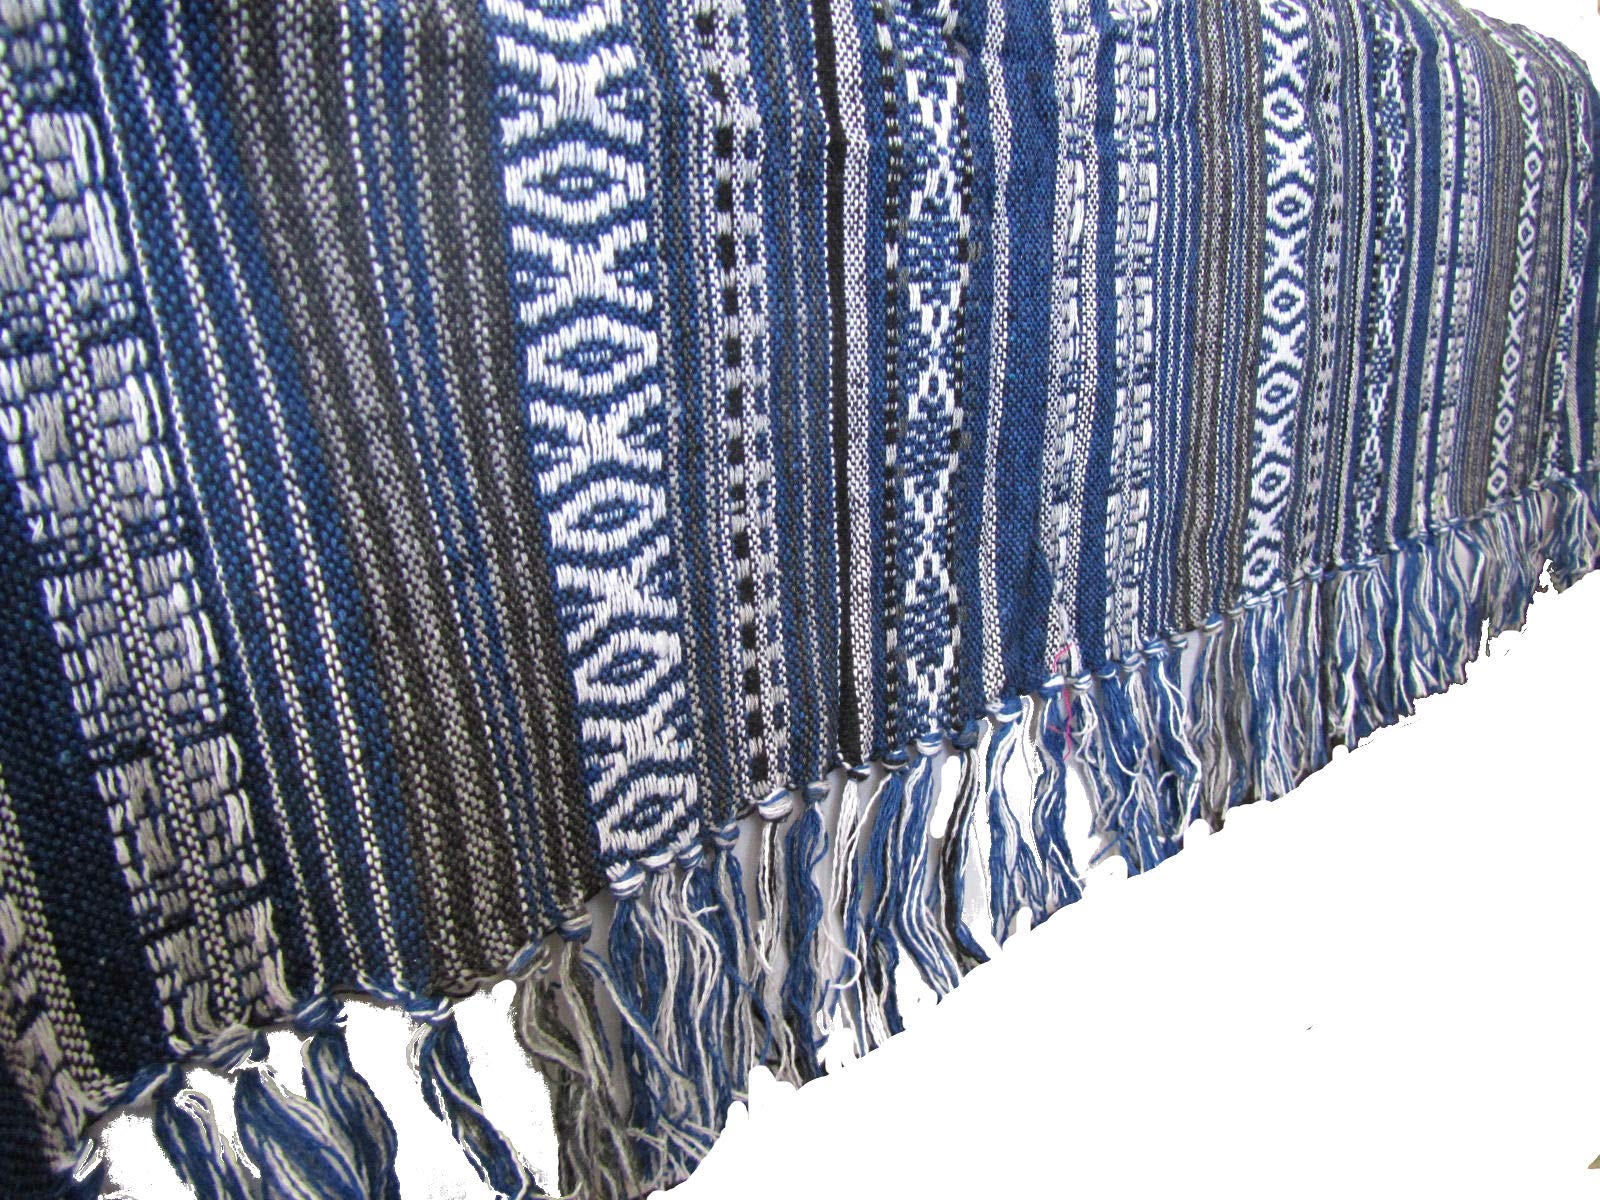 Large Handwoven Tribal Blanket Aztec Ikat Bedspread Queen Size 100% Cotton 90'' x 85'' by Blue Orchid (Image #2)